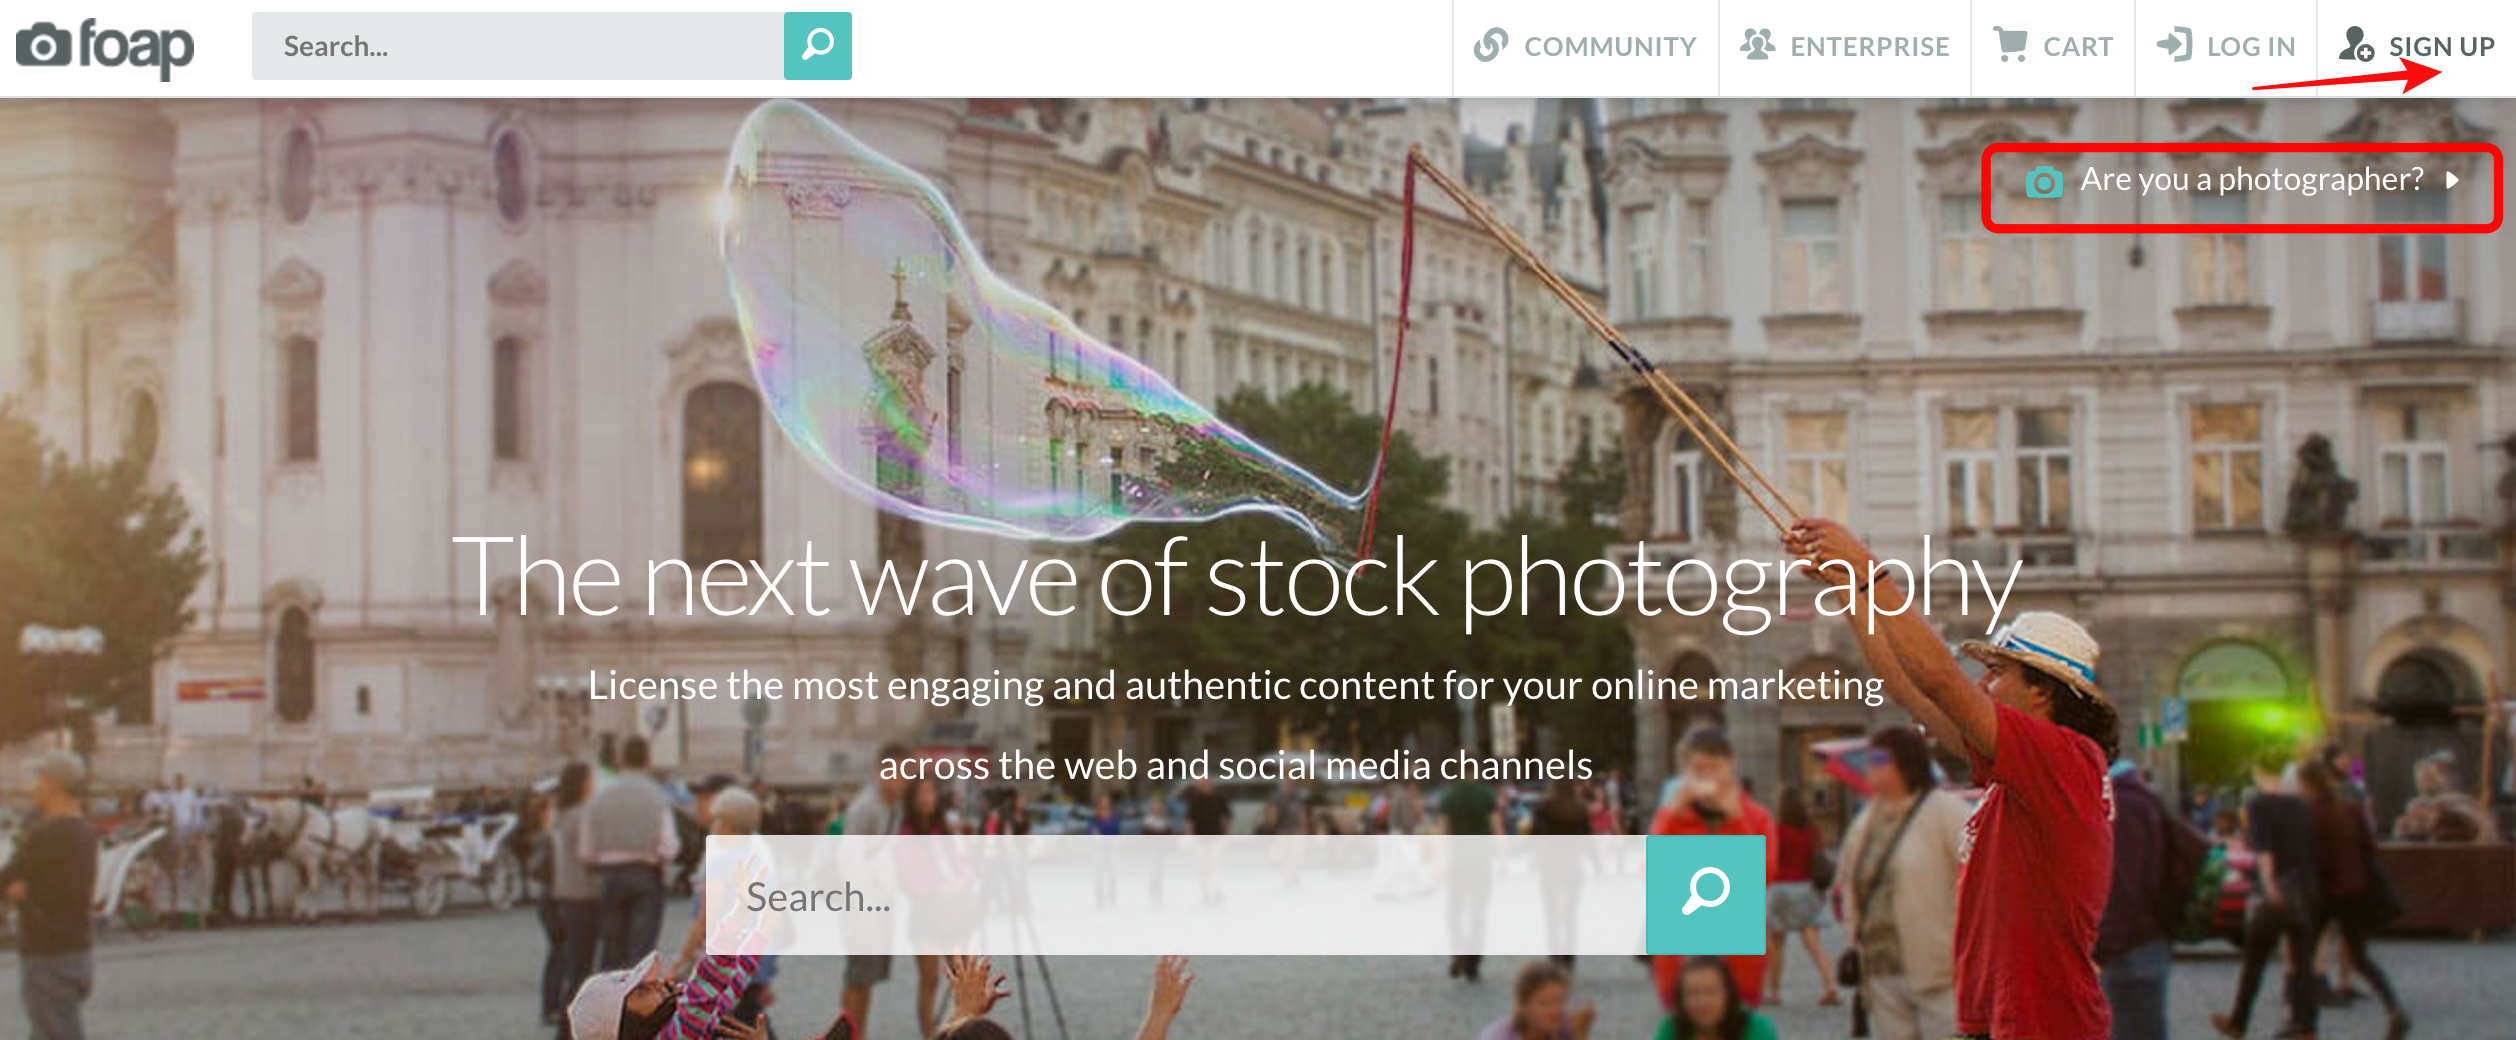 best-app-to-sell-photos-online-via-foap-earn-extra-income